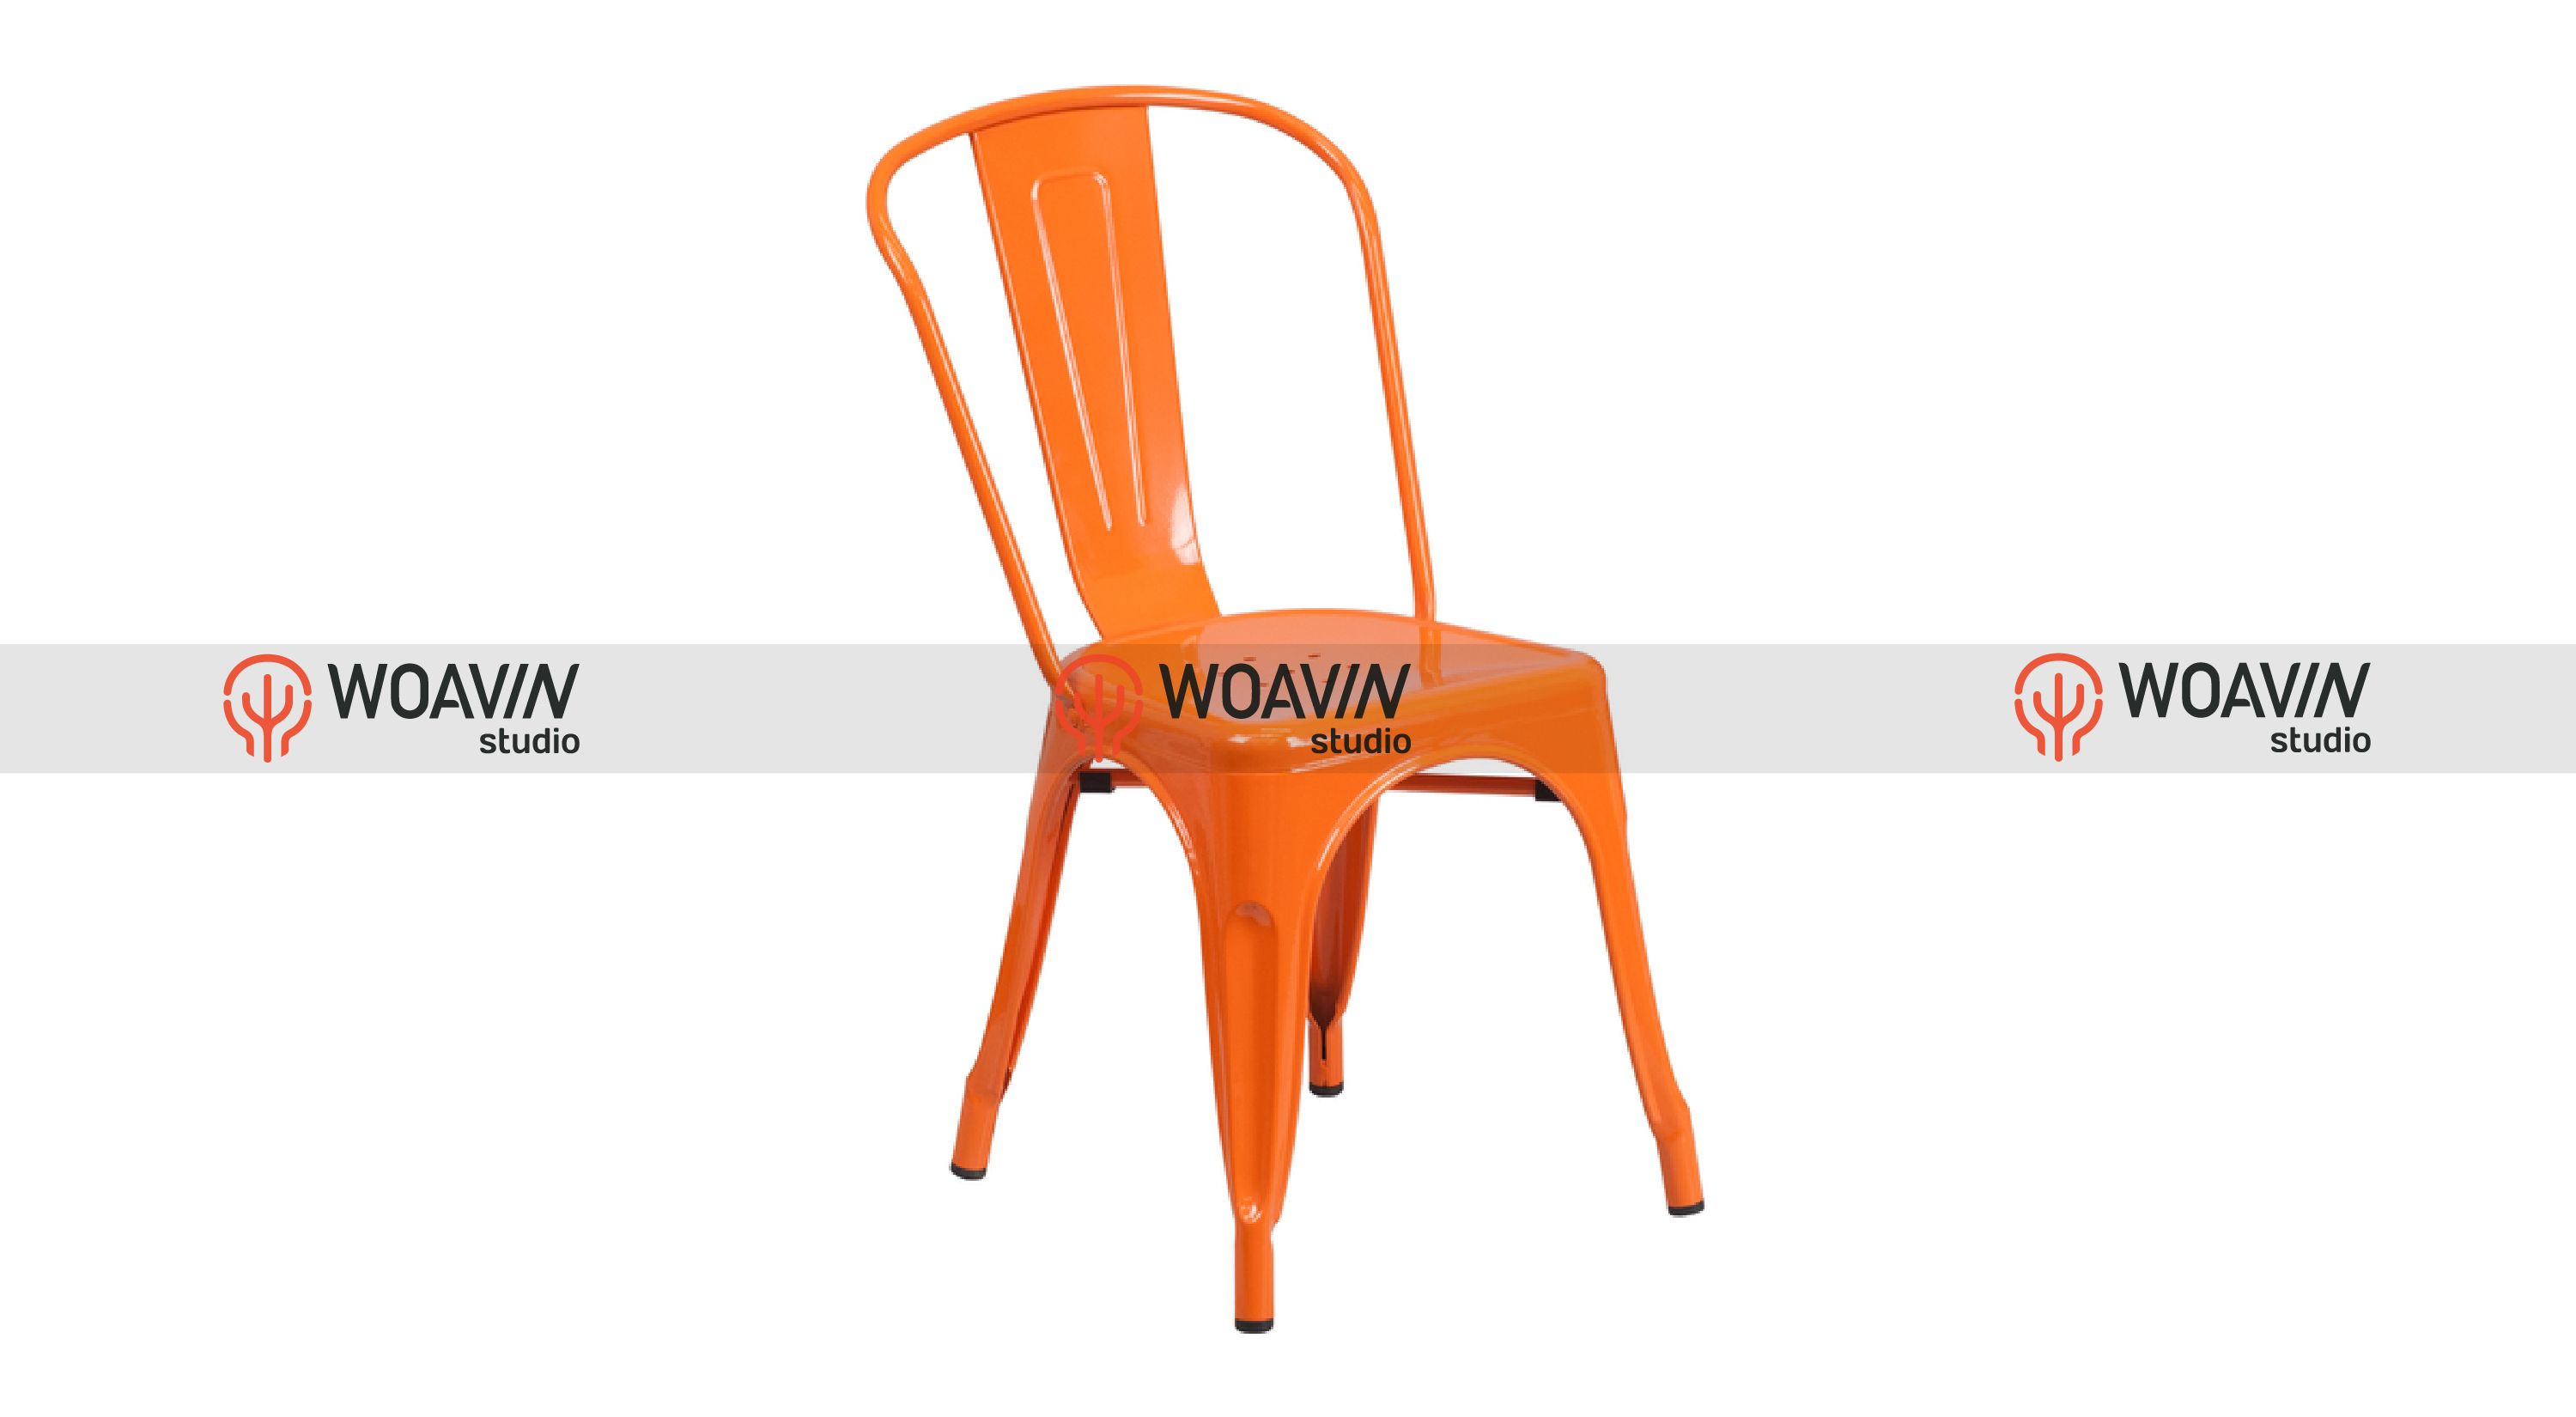 Peachy Ms Metal Sheet Powder Coated Furniture Woavin Studio Lamtechconsult Wood Chair Design Ideas Lamtechconsultcom